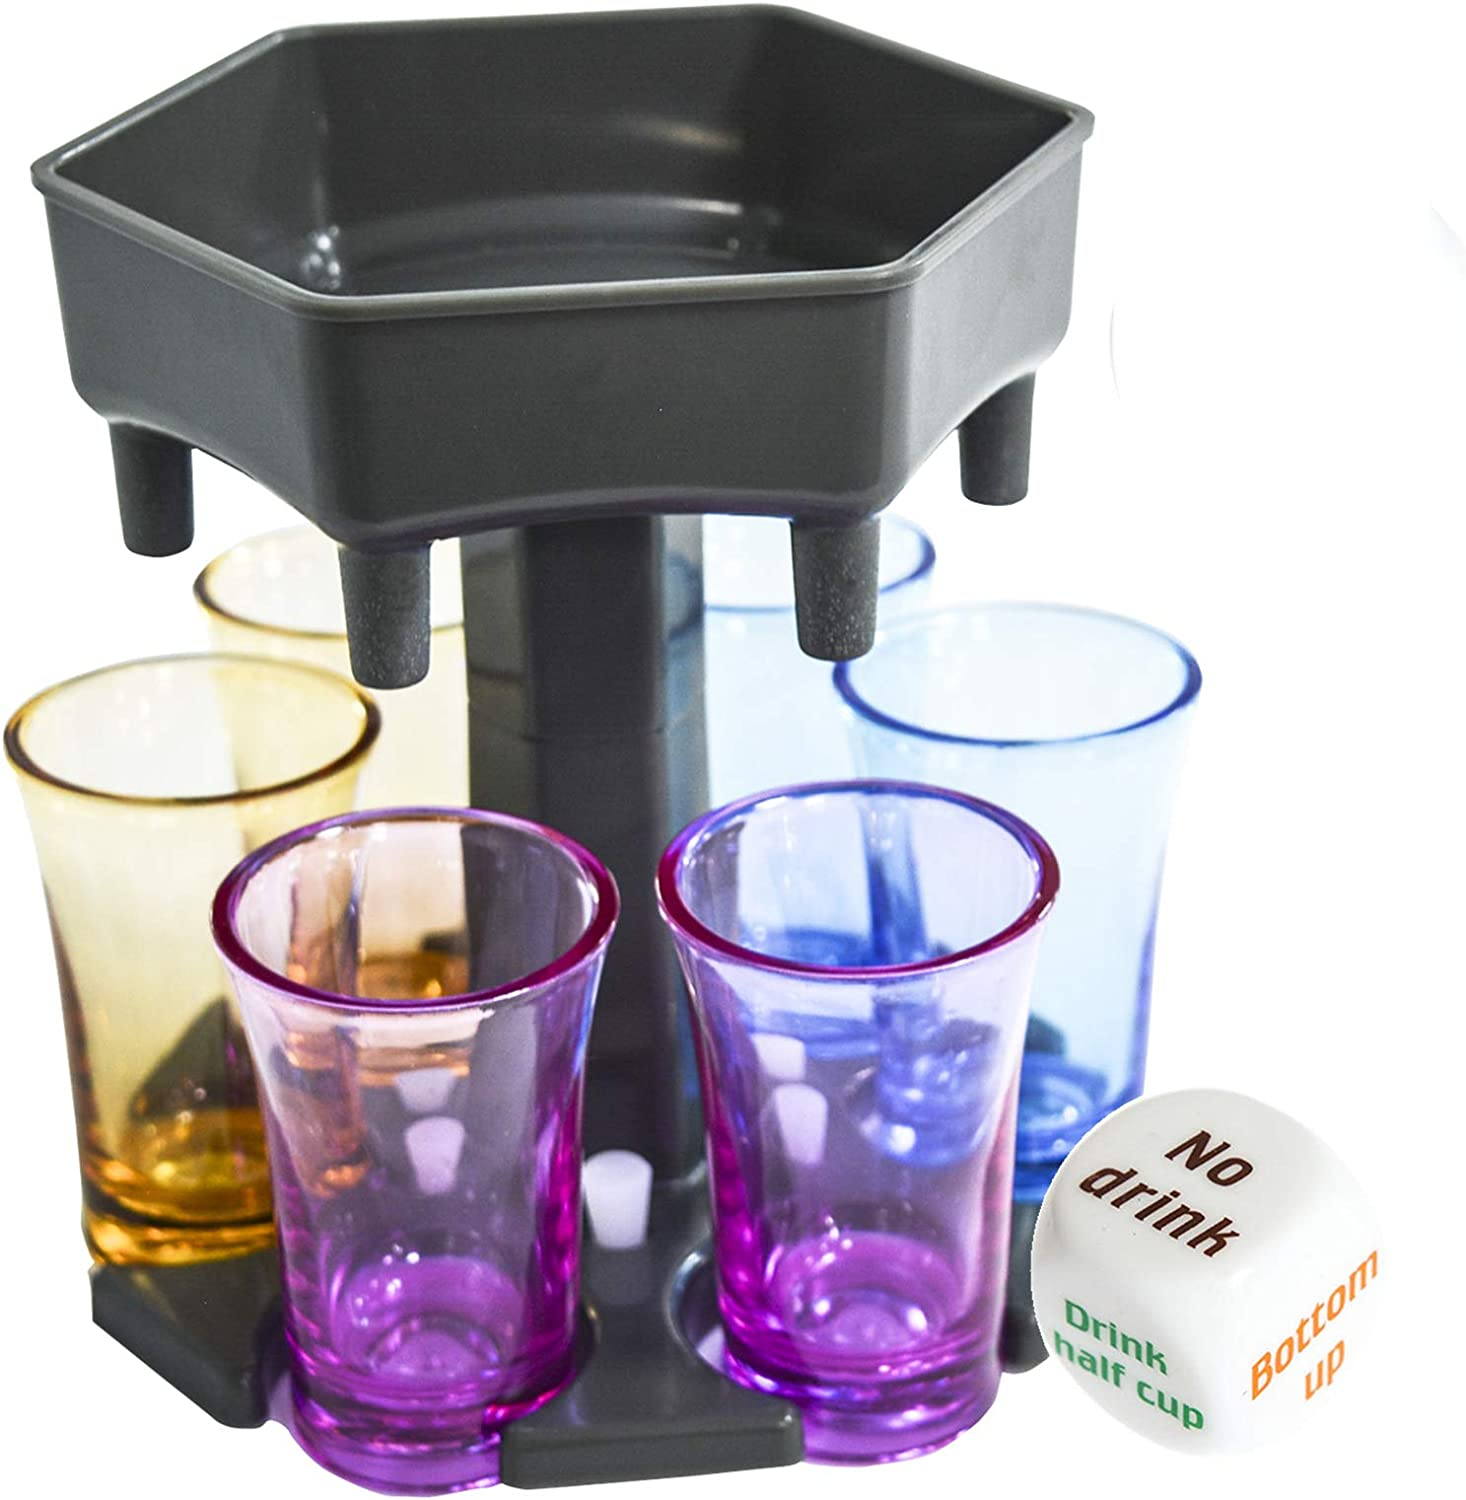 6 Shot Glass Dispenser and Holder, Drink Dispenser with Game Dice, Liquor Dispenser with 6 Colorful Glasses, Drinking Game Dispenser for Cocktail Party, Perfect Gift for Friends